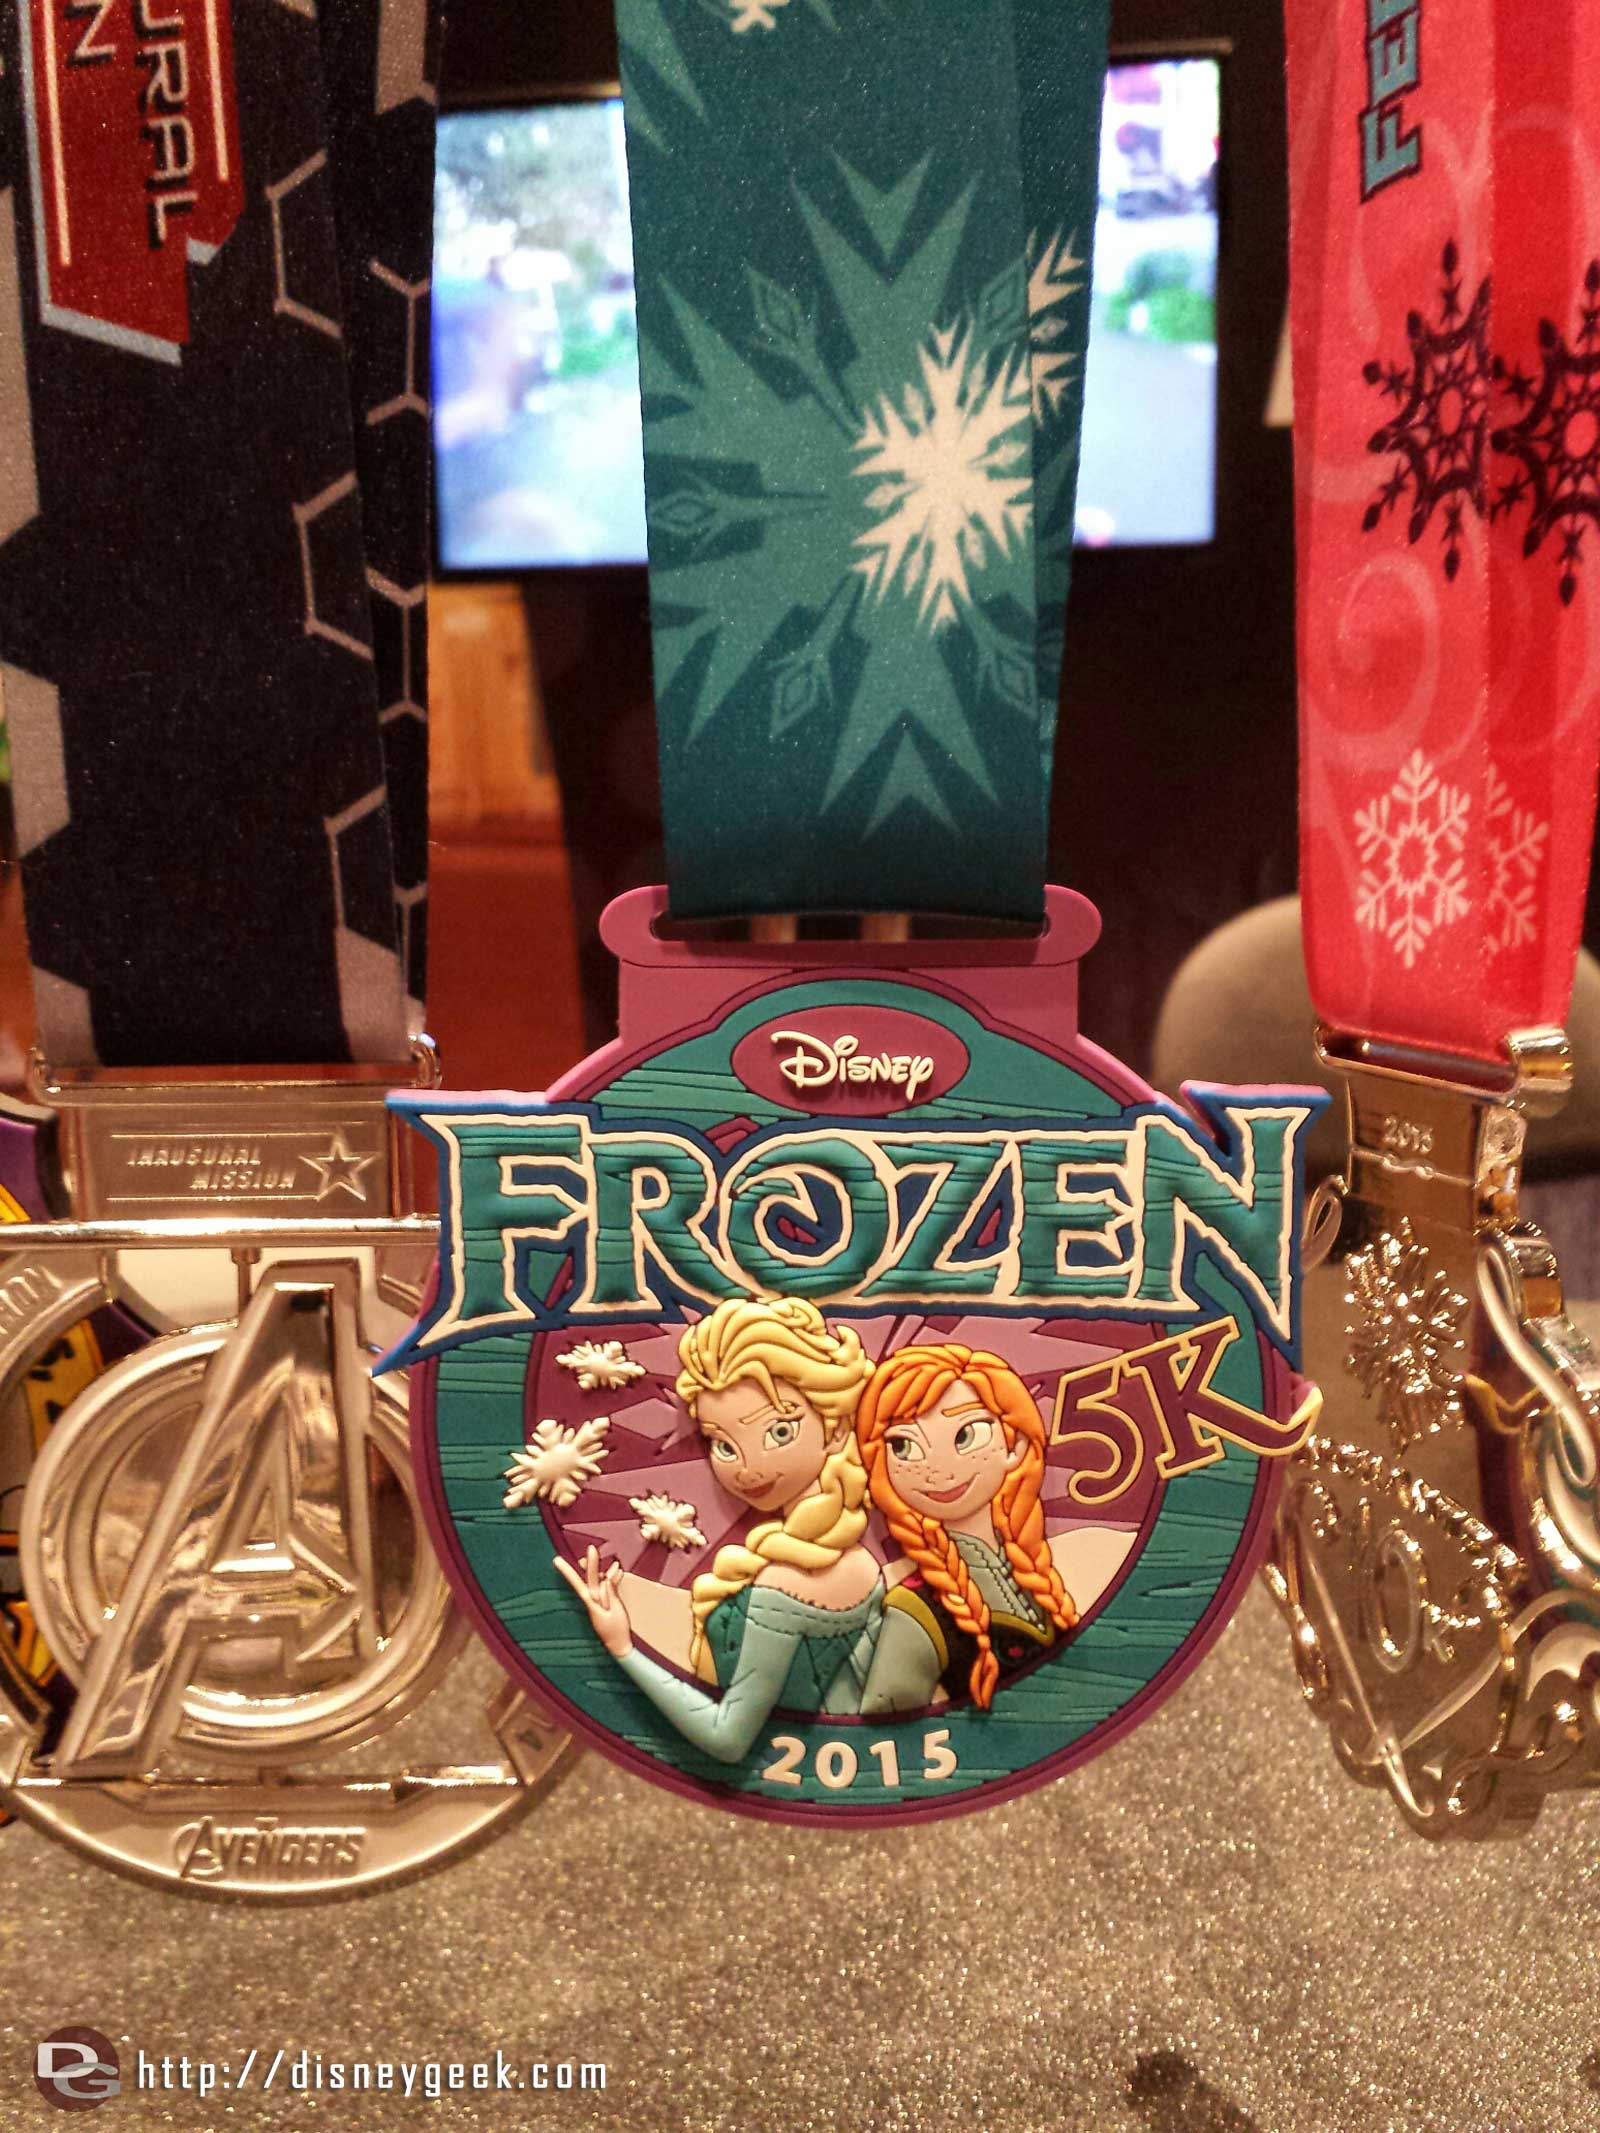 The medal for the upcoming #Frozen 5k